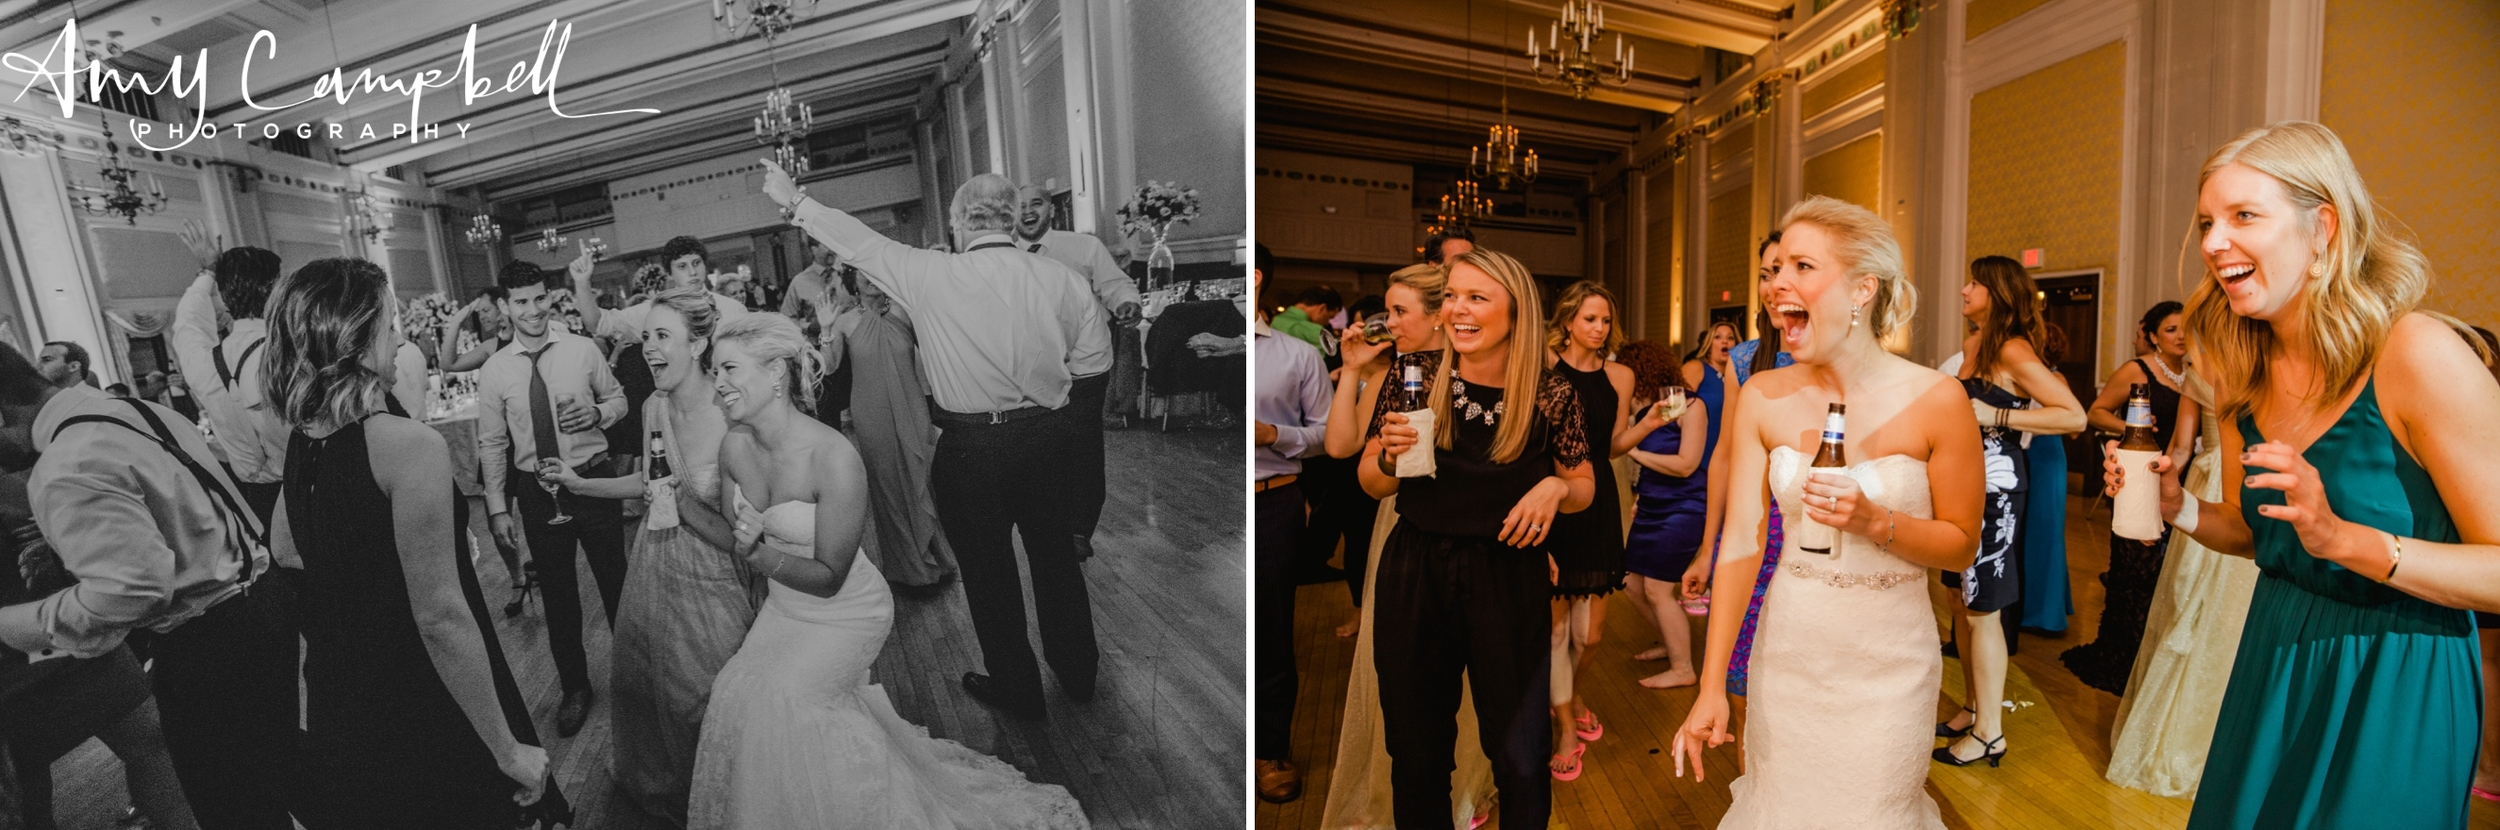 chelseamike_wedss_pics_amycampbellphotography_162.jpg